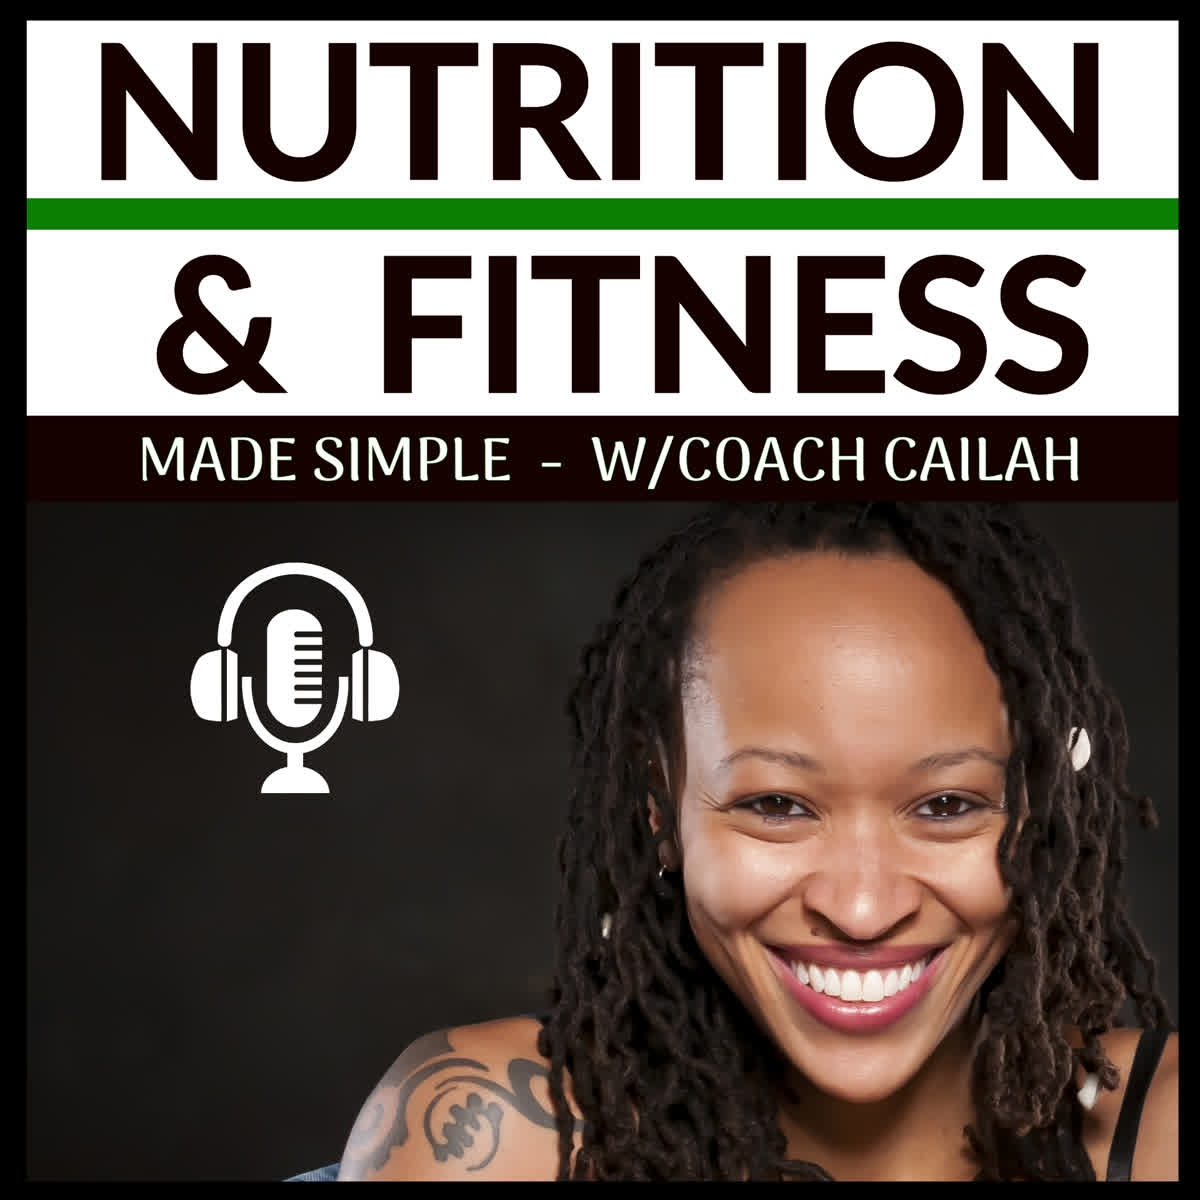 Hey! Are you into podcasts? Check out my podcast Nutrition and Fitness Made Simple 😁   #podcast #nutrition #fitness #health #podcaster